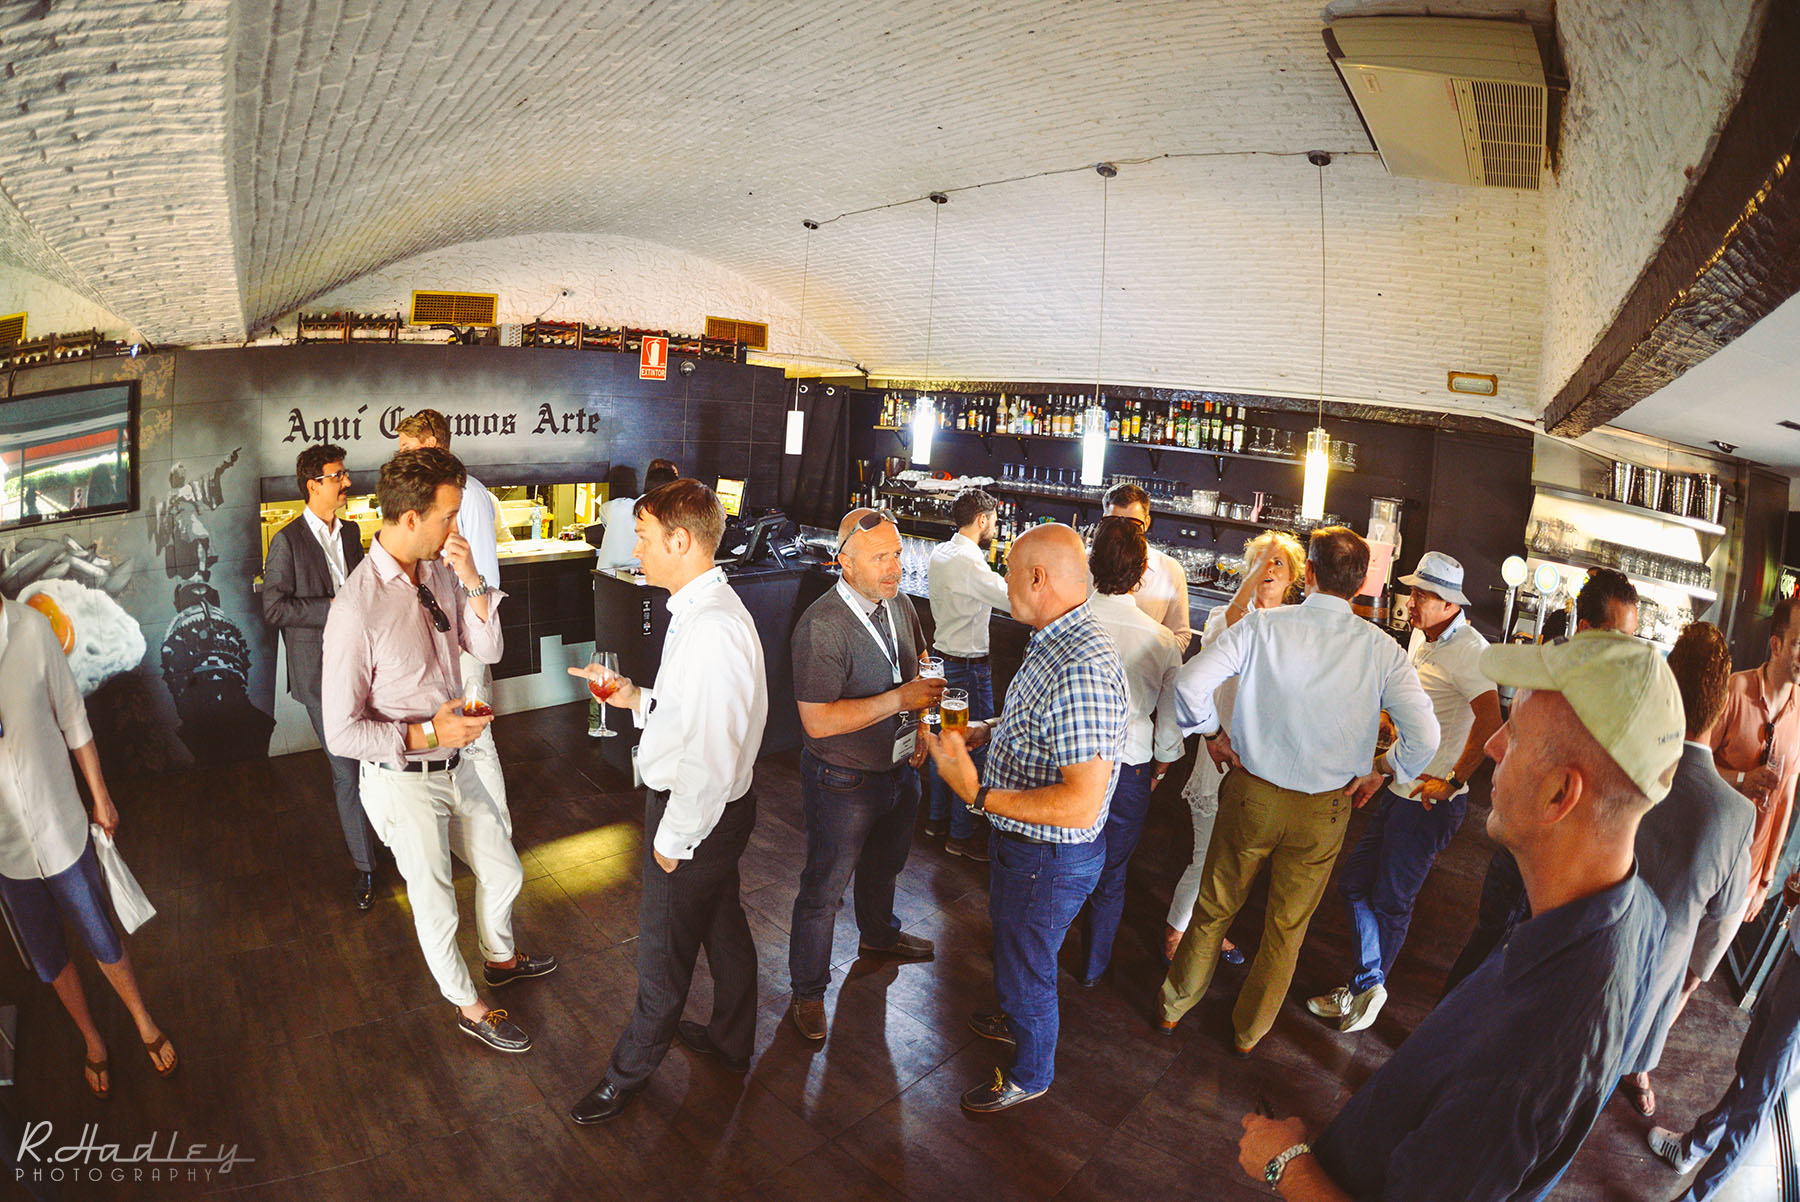 Corporate Event in Barcelona. Nikon D600 with Sigma 15mm Fisheye lens